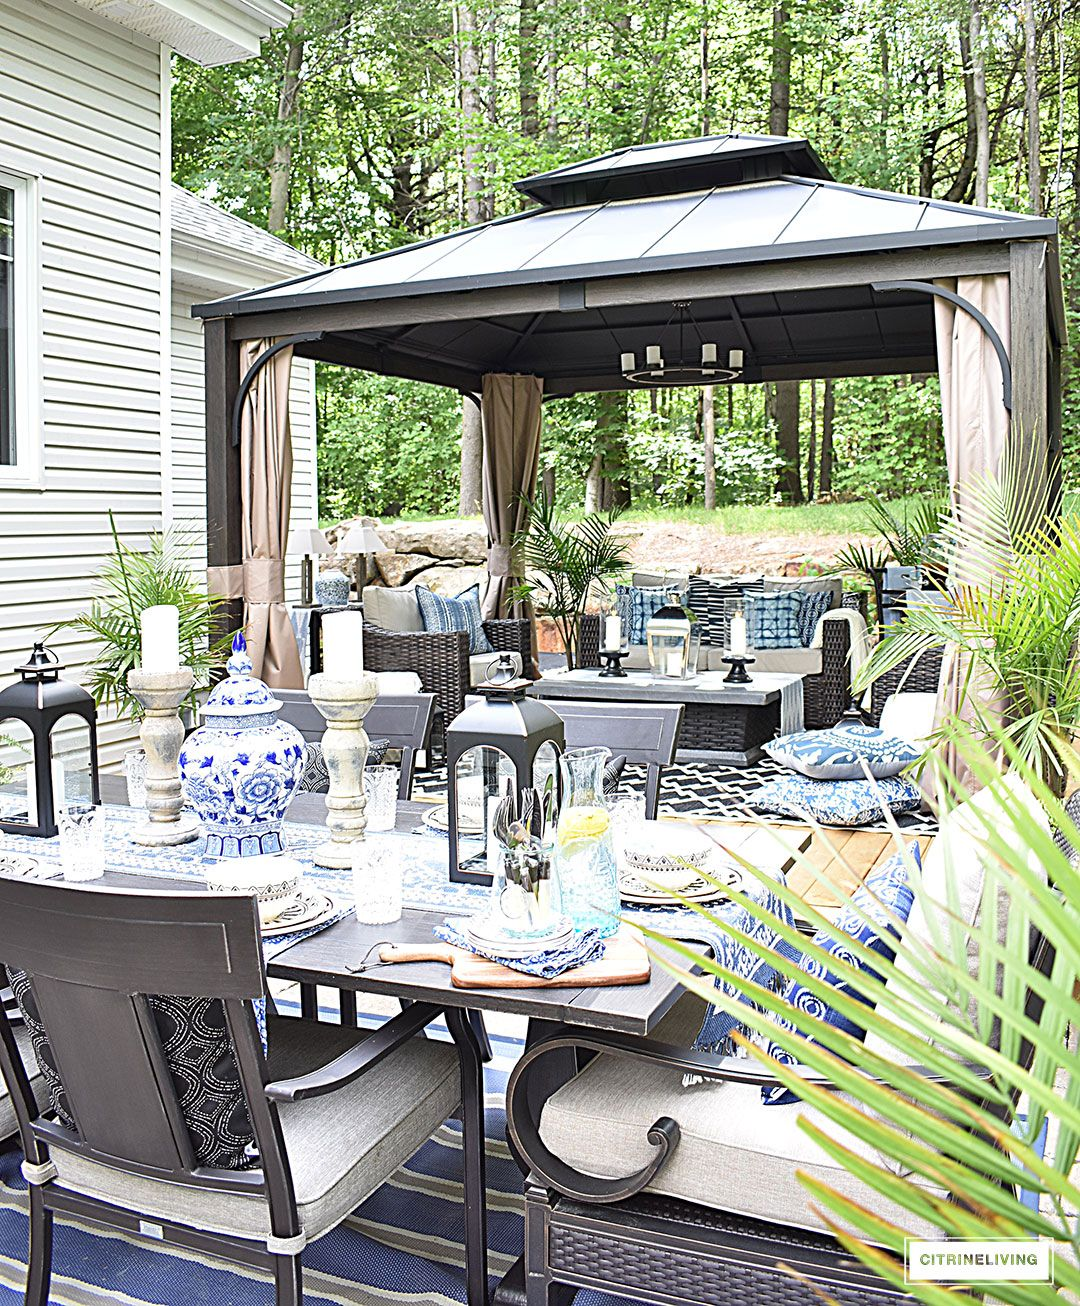 Patio Garden Ideas For Every Space: OUR NEW BACKYARD PATIO REVEAL